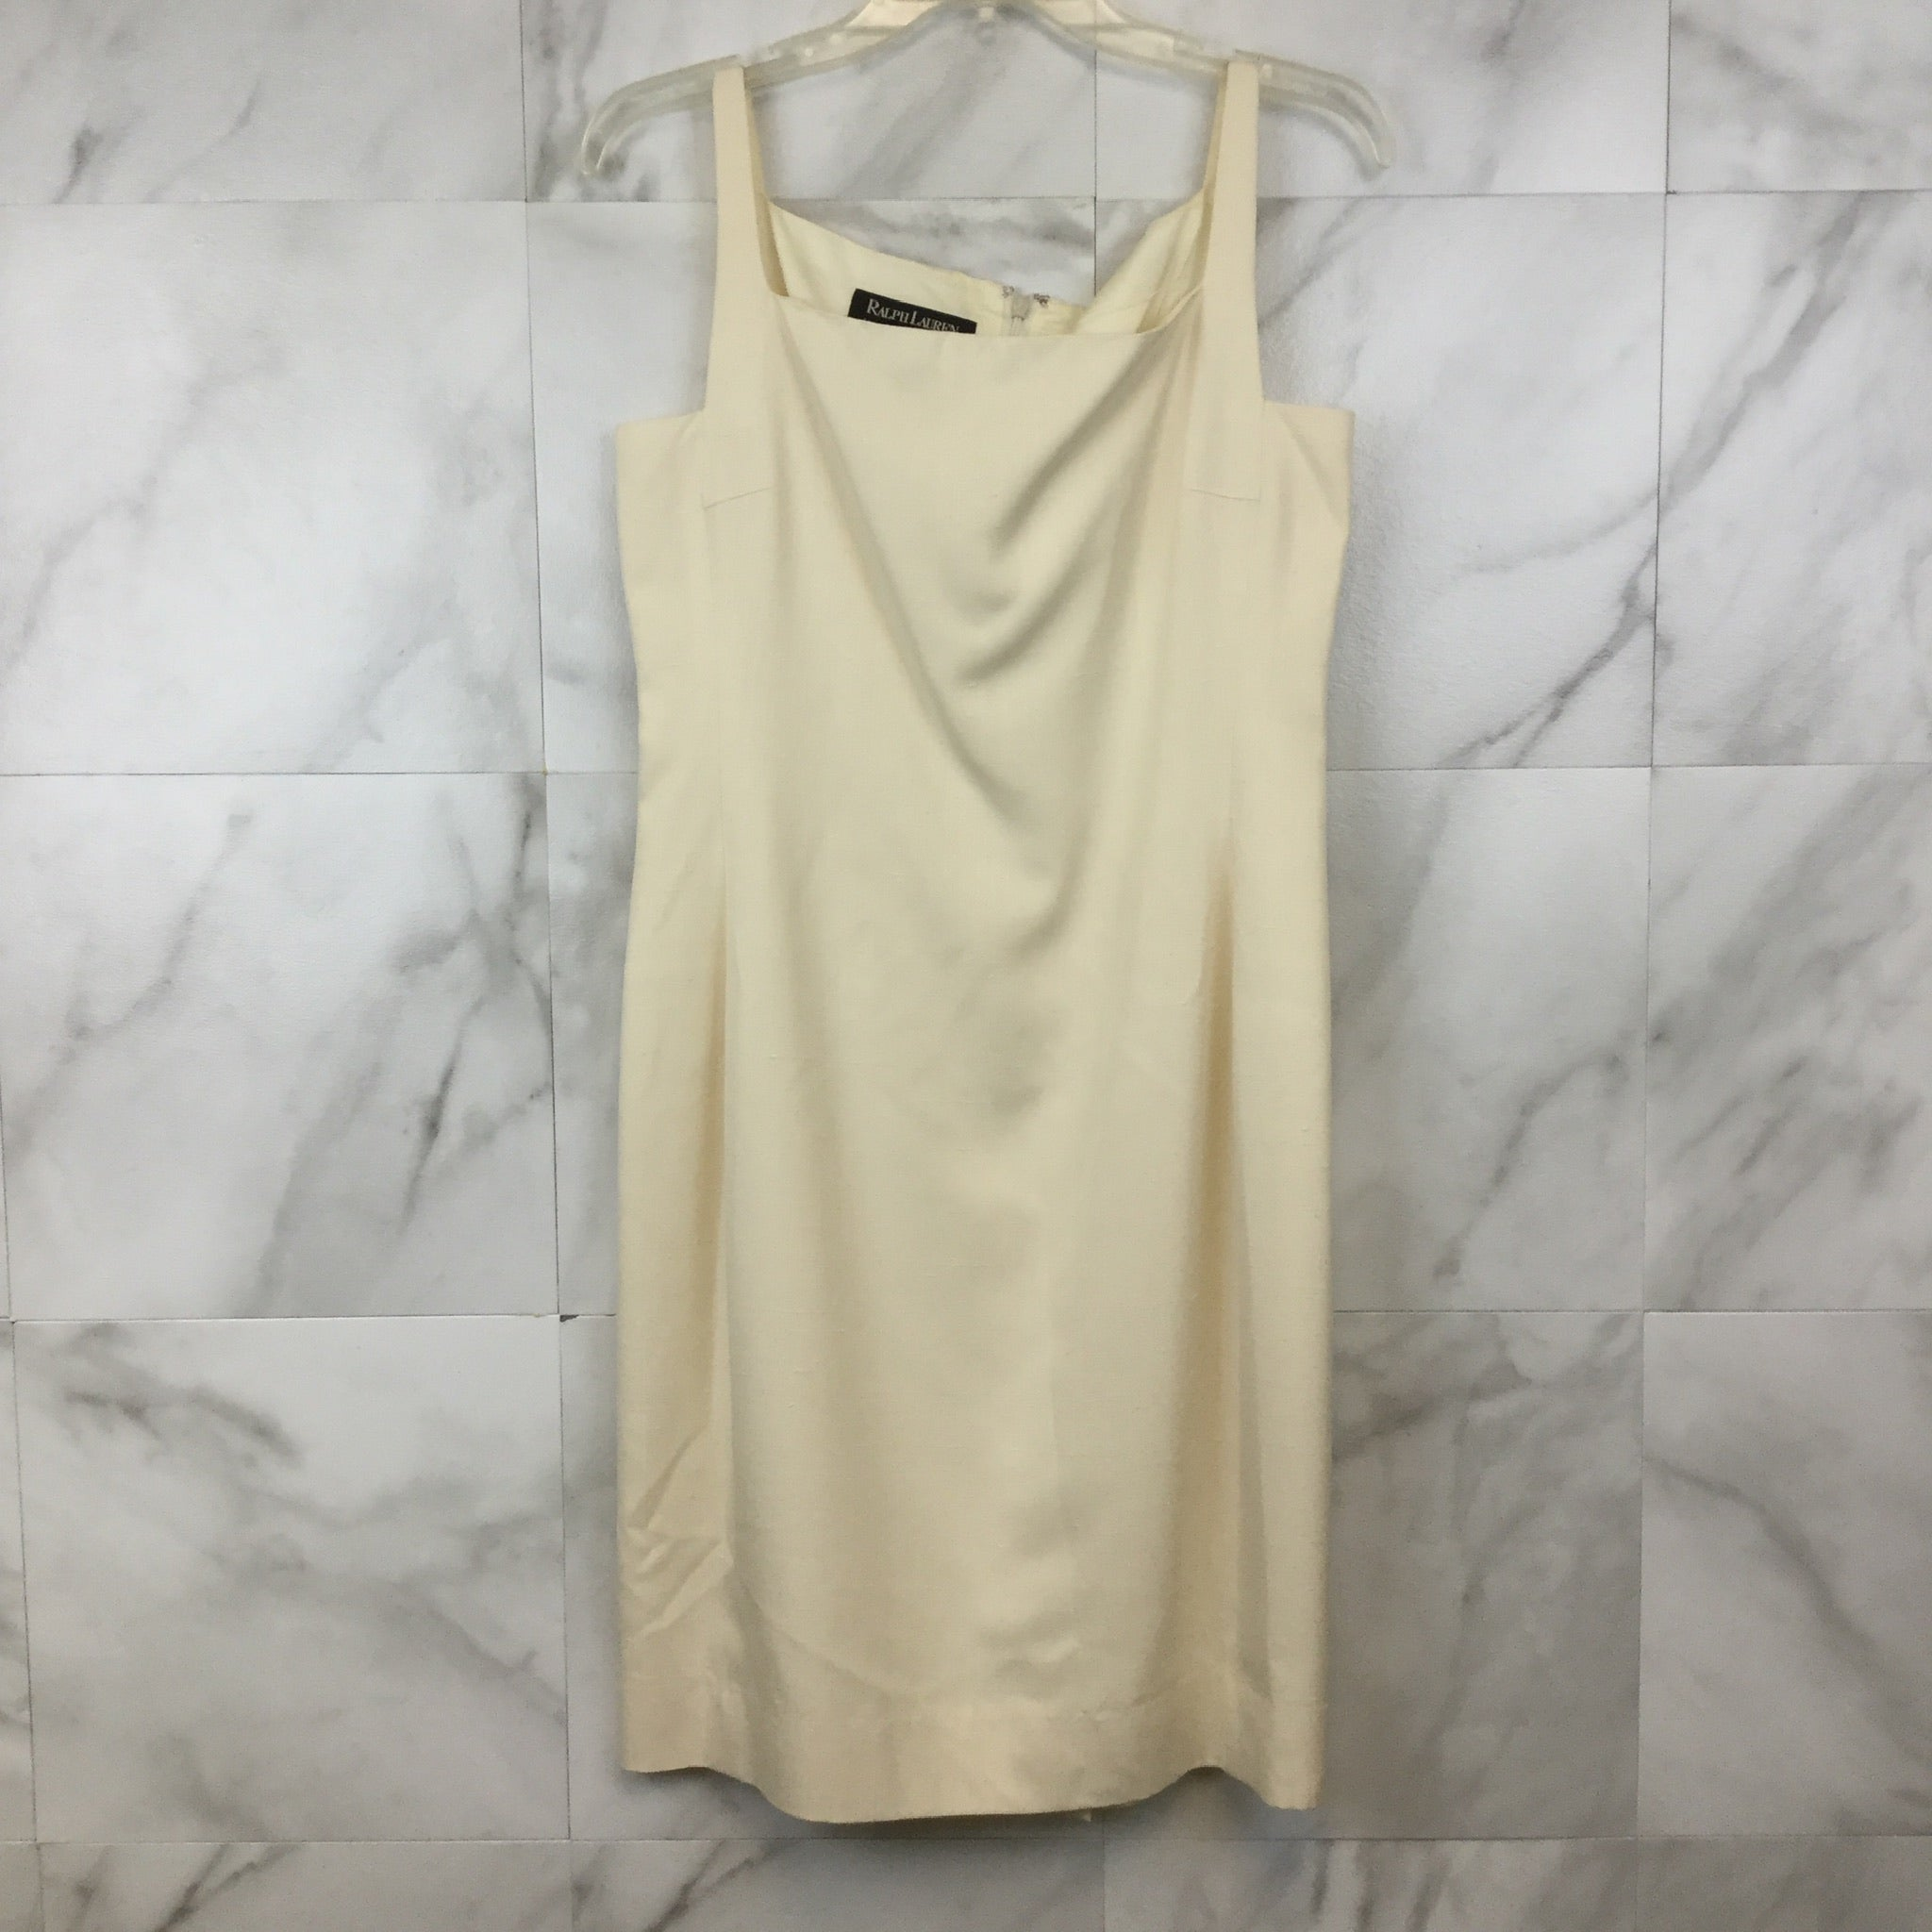 Ralph Lauren Vintage Shift Dress - size 8